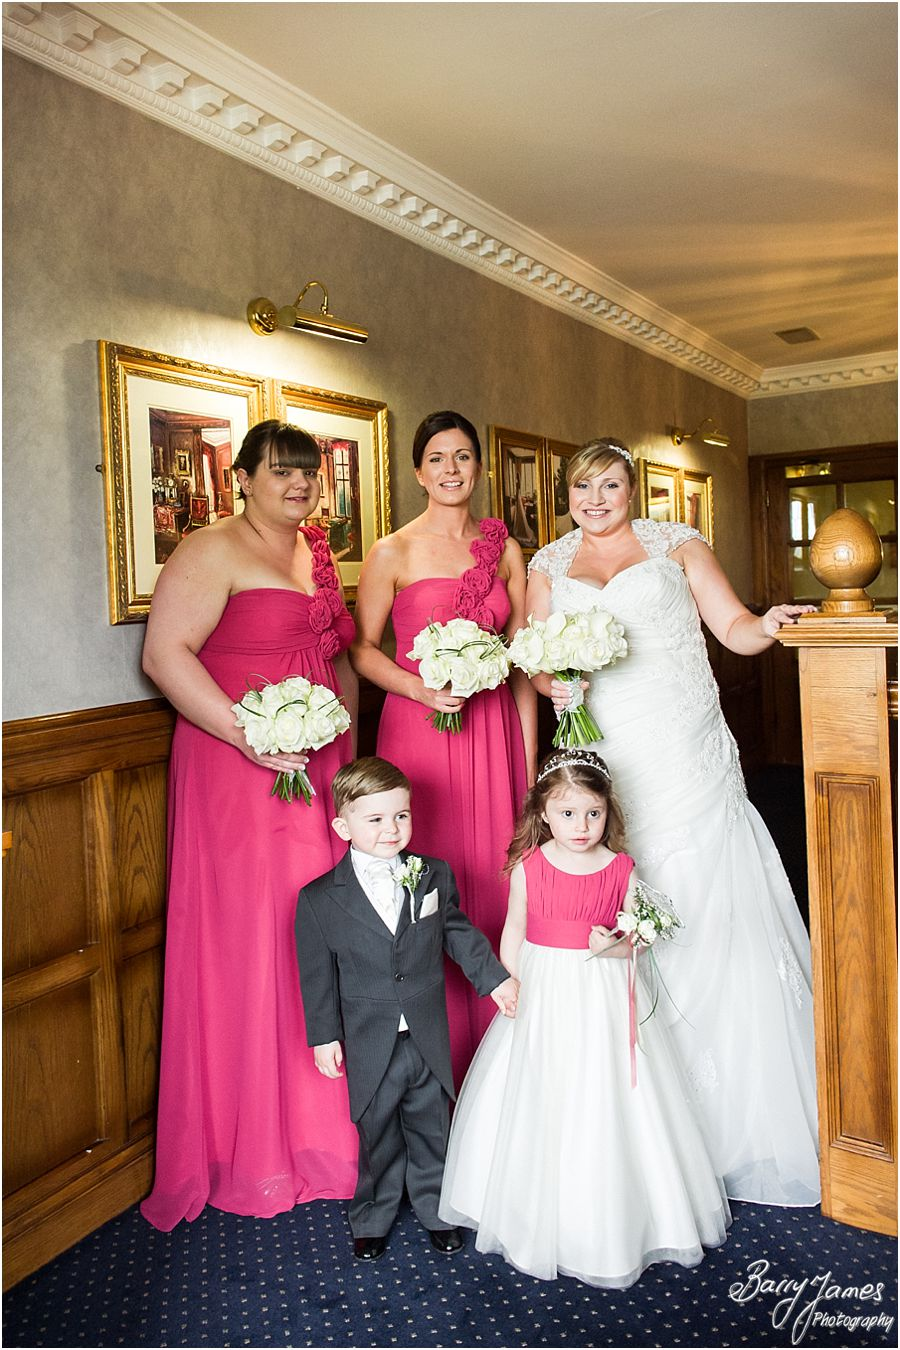 Unobtrusive, relaxed wedding photographs at The Moat House in Acton Trussell that tell the beautiful wedding story by Acton Trussell Wedding Photographer Barry James